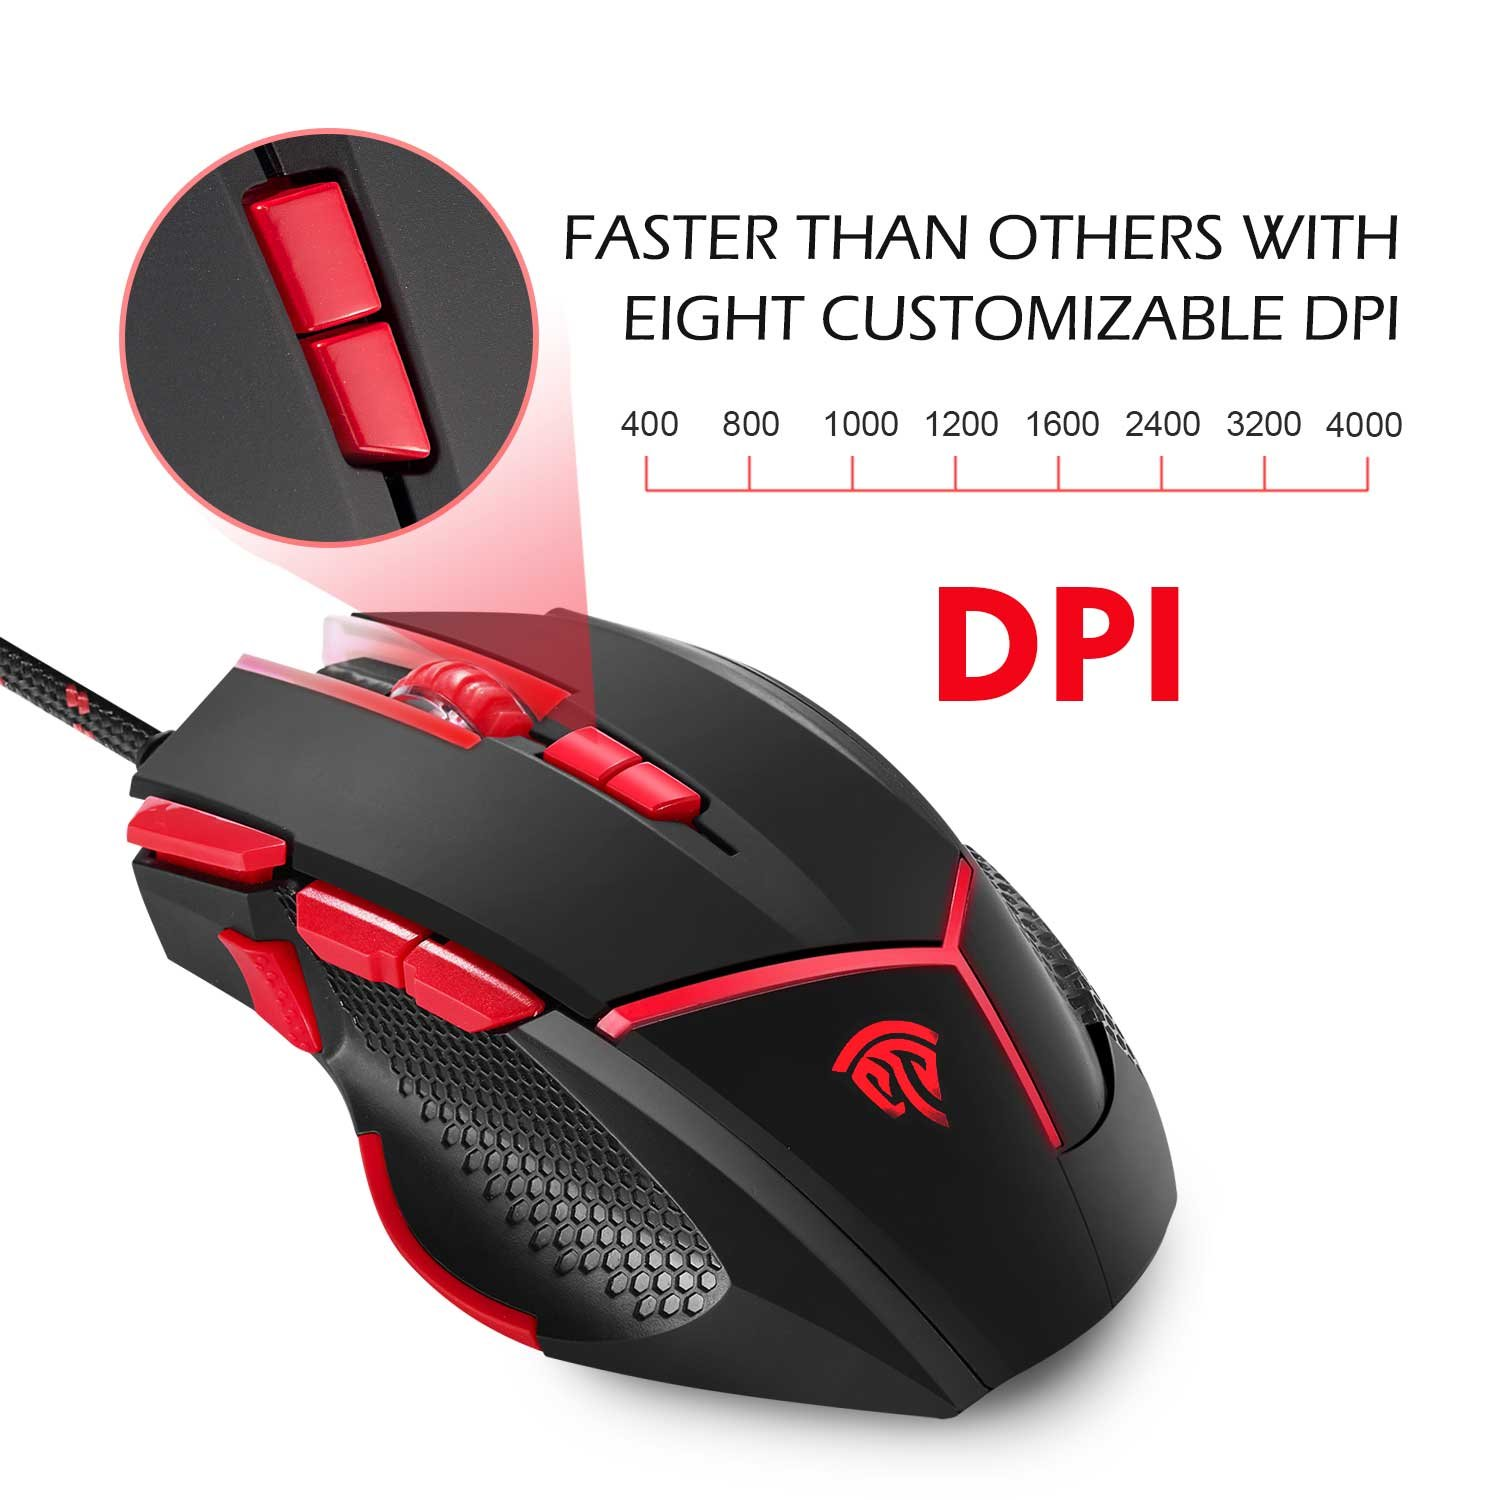 [Wired Gaming Mouse 4000 DPI 9 Buttons Programmable] EasySMX V18 Optical Mouse Weight Tuning Set Non-slip Design with LED Light Fire/Sniper Button for Laptop PC Computer Gamer (Black and Red)